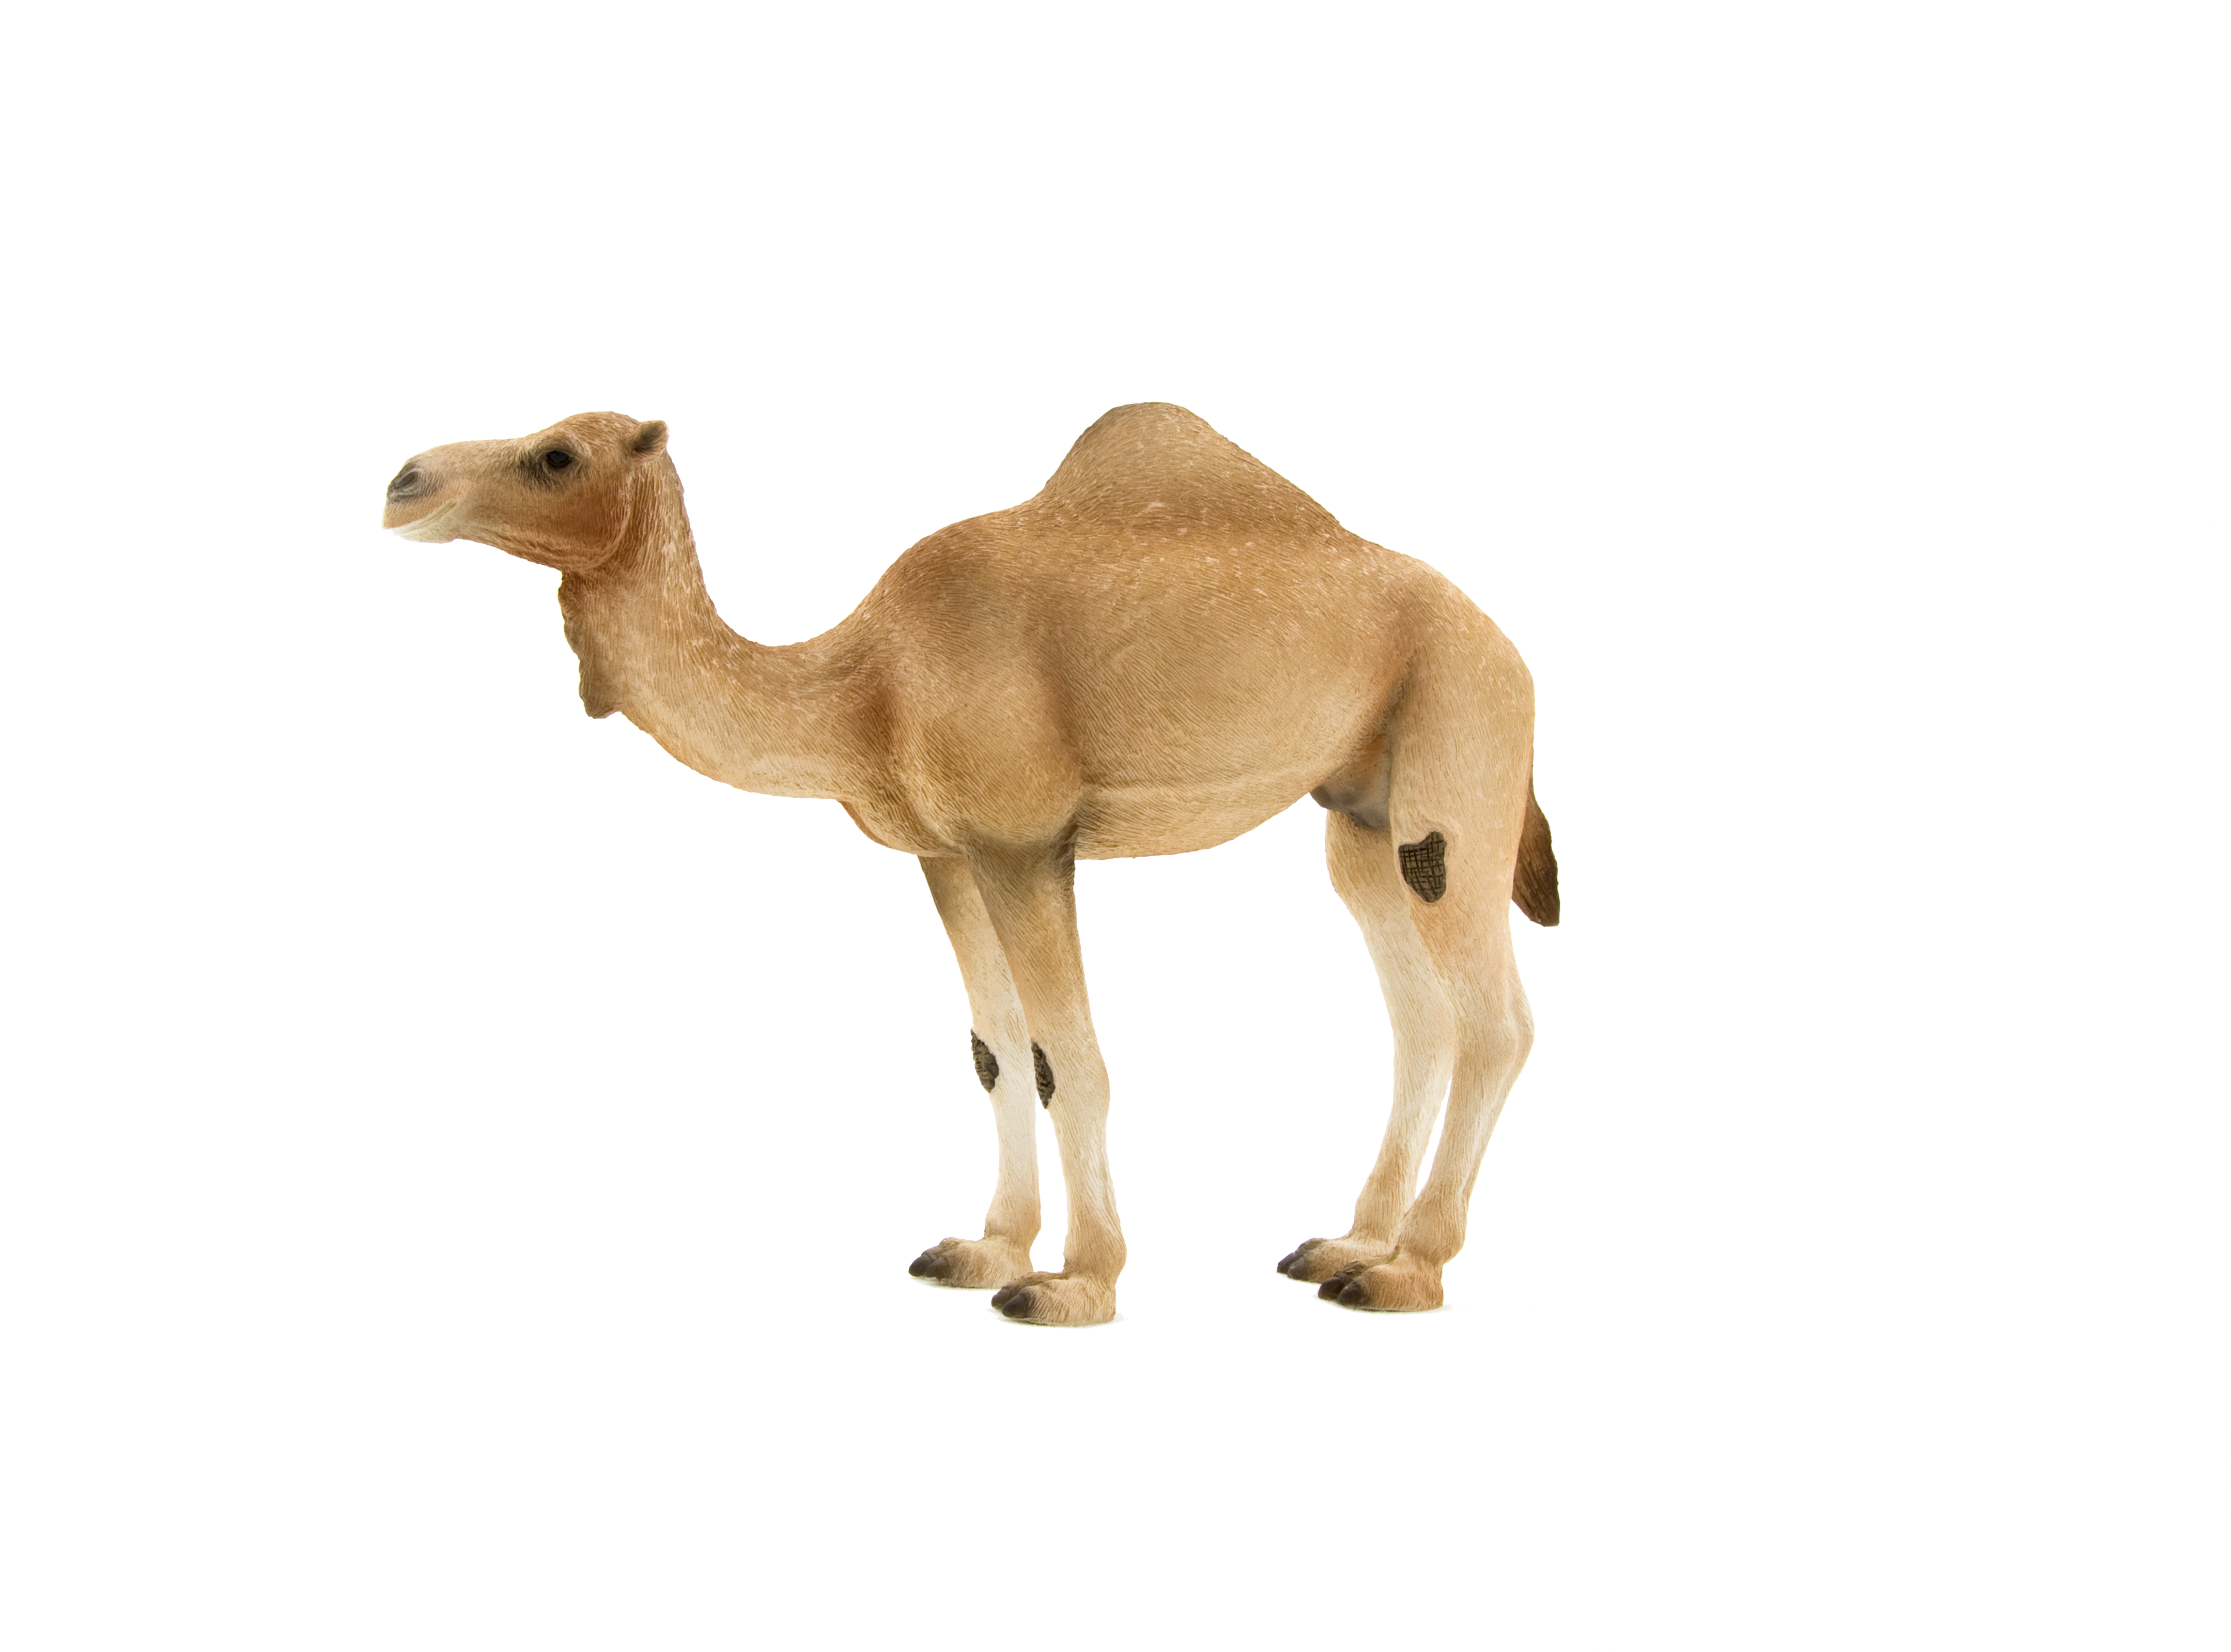 animal planet arabian camel elephanta elephanta #21395